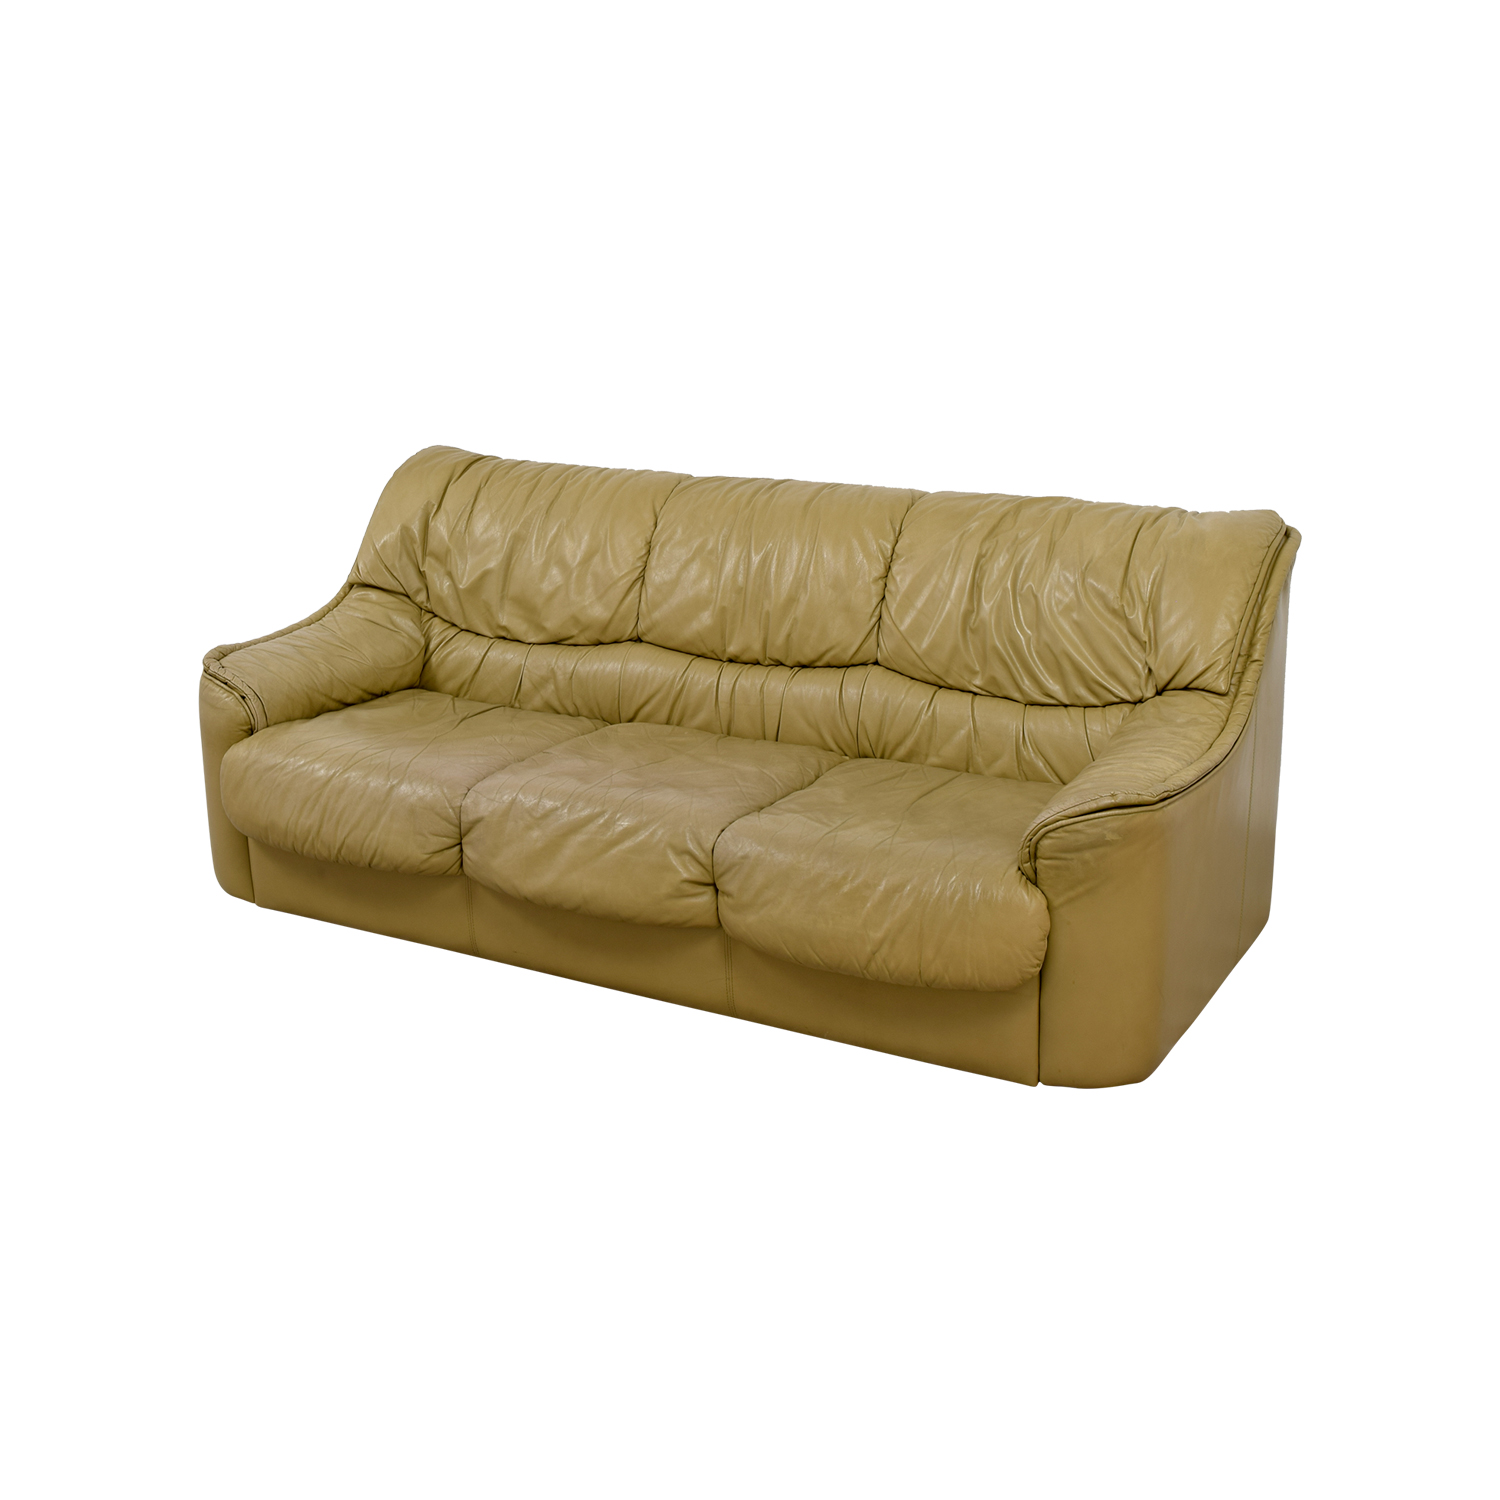 Beige Leather Sofa sale